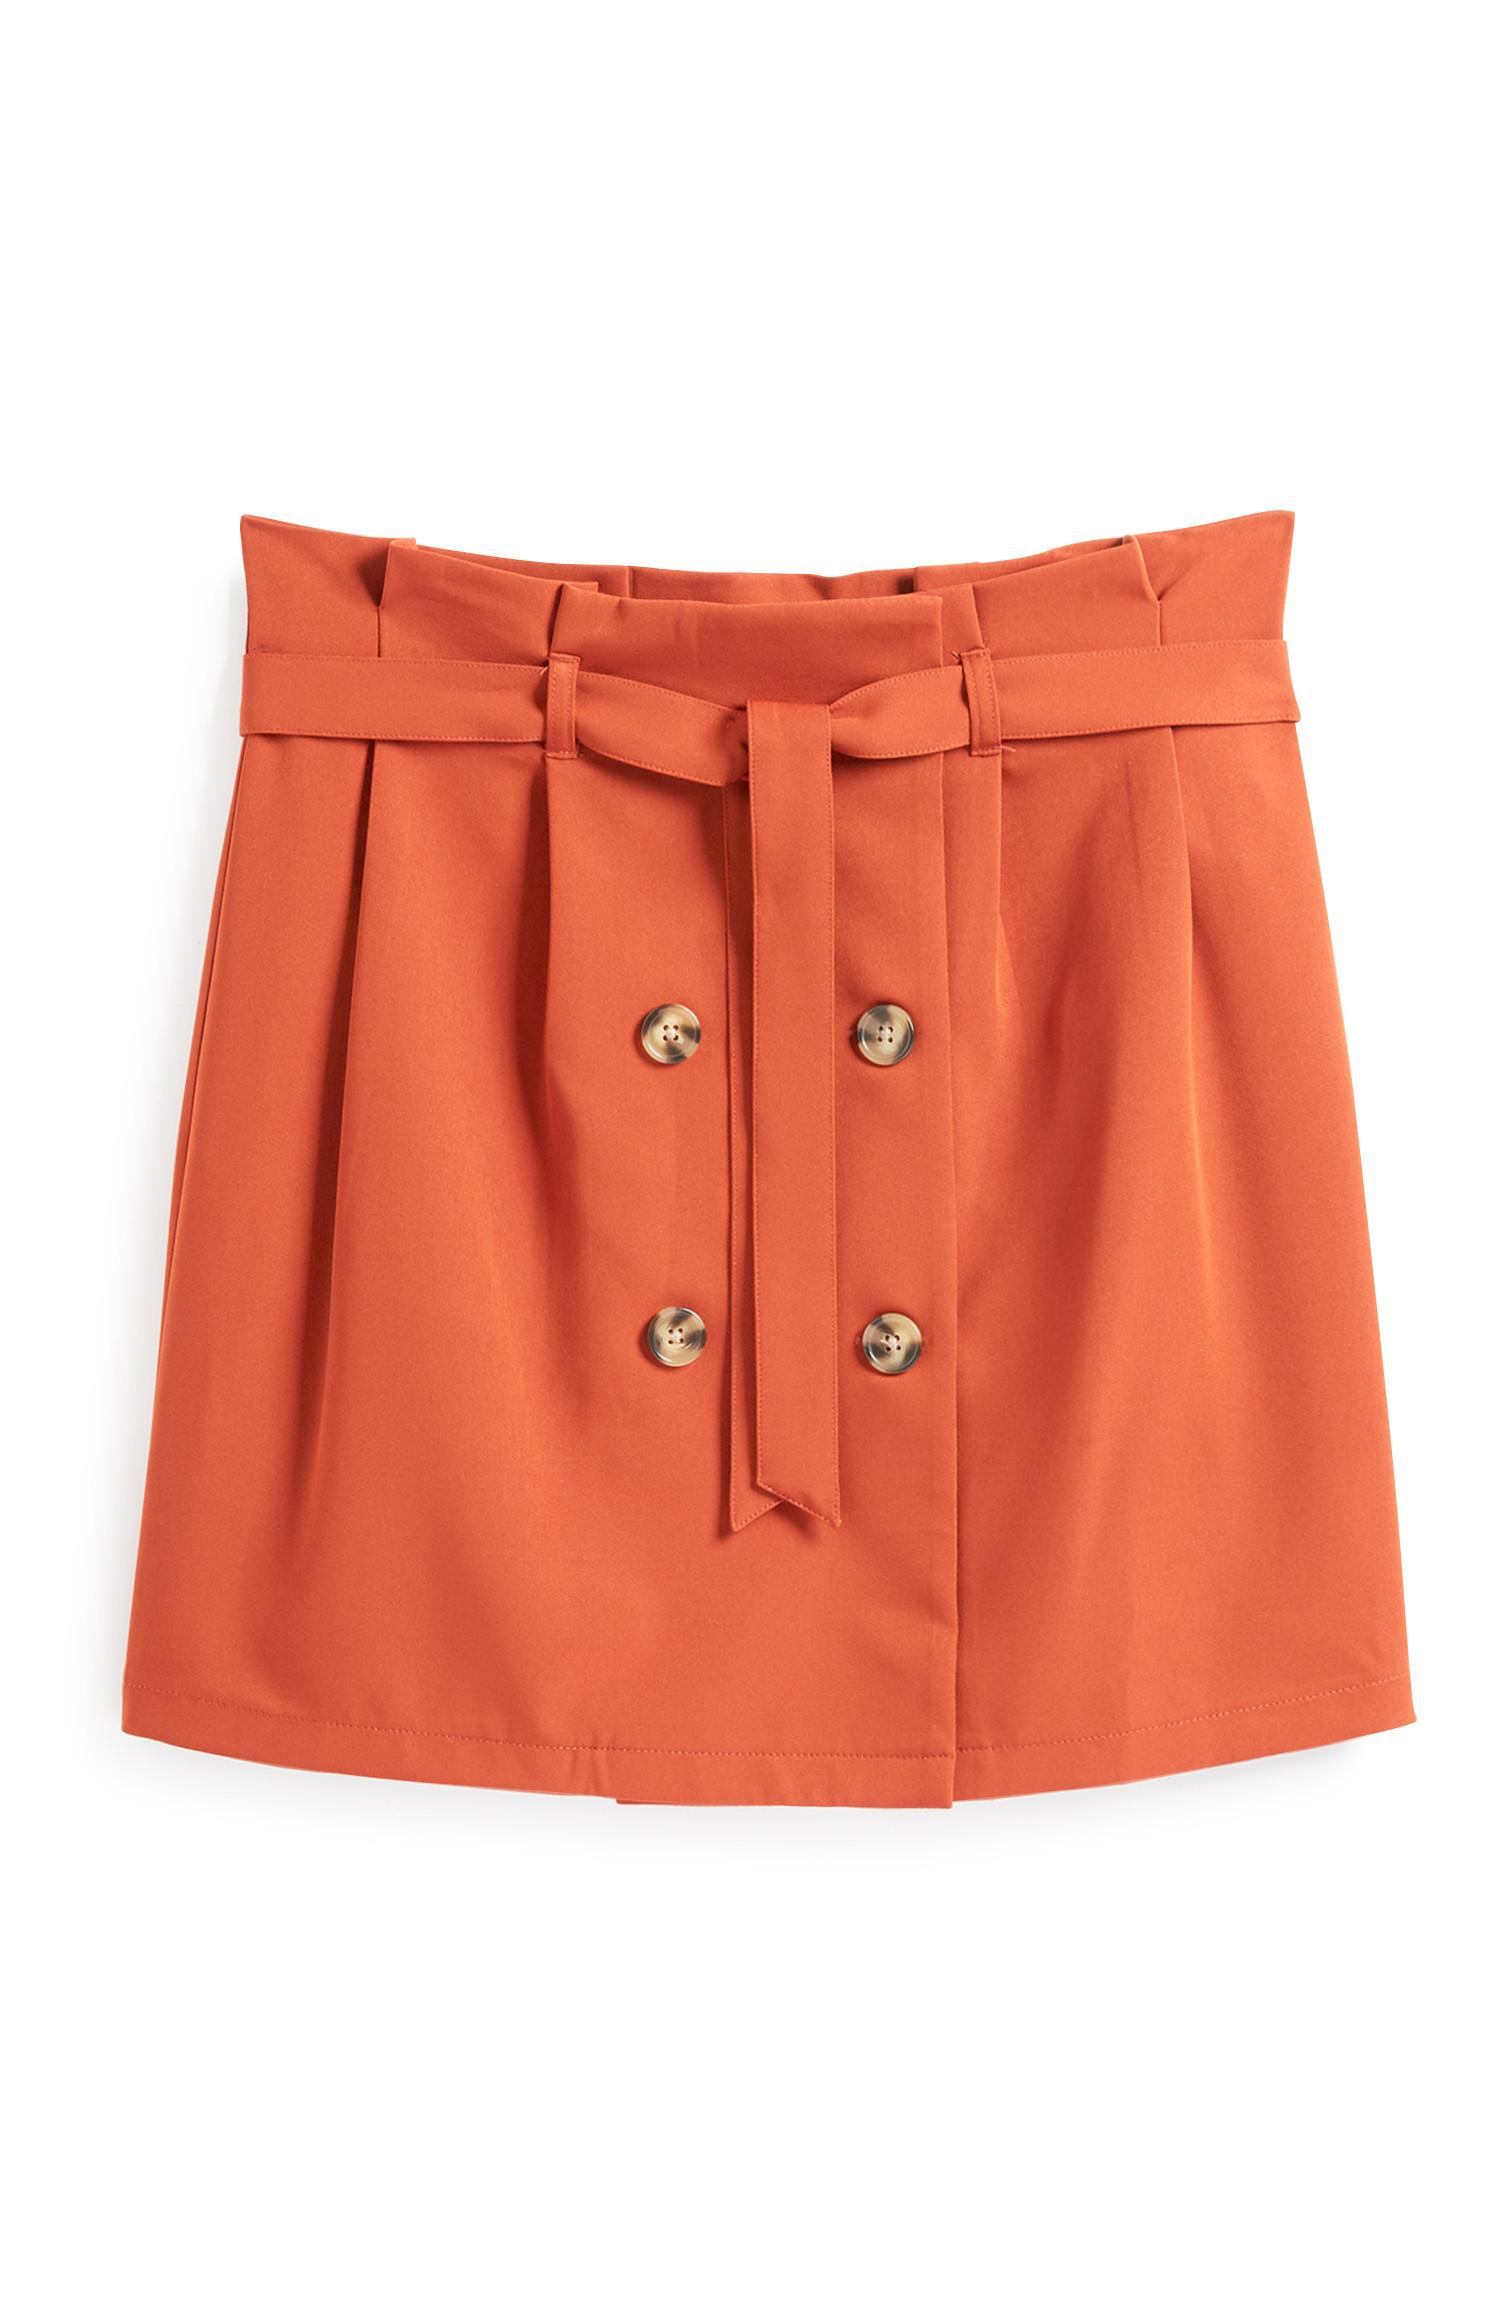 Orange Belted Skirt